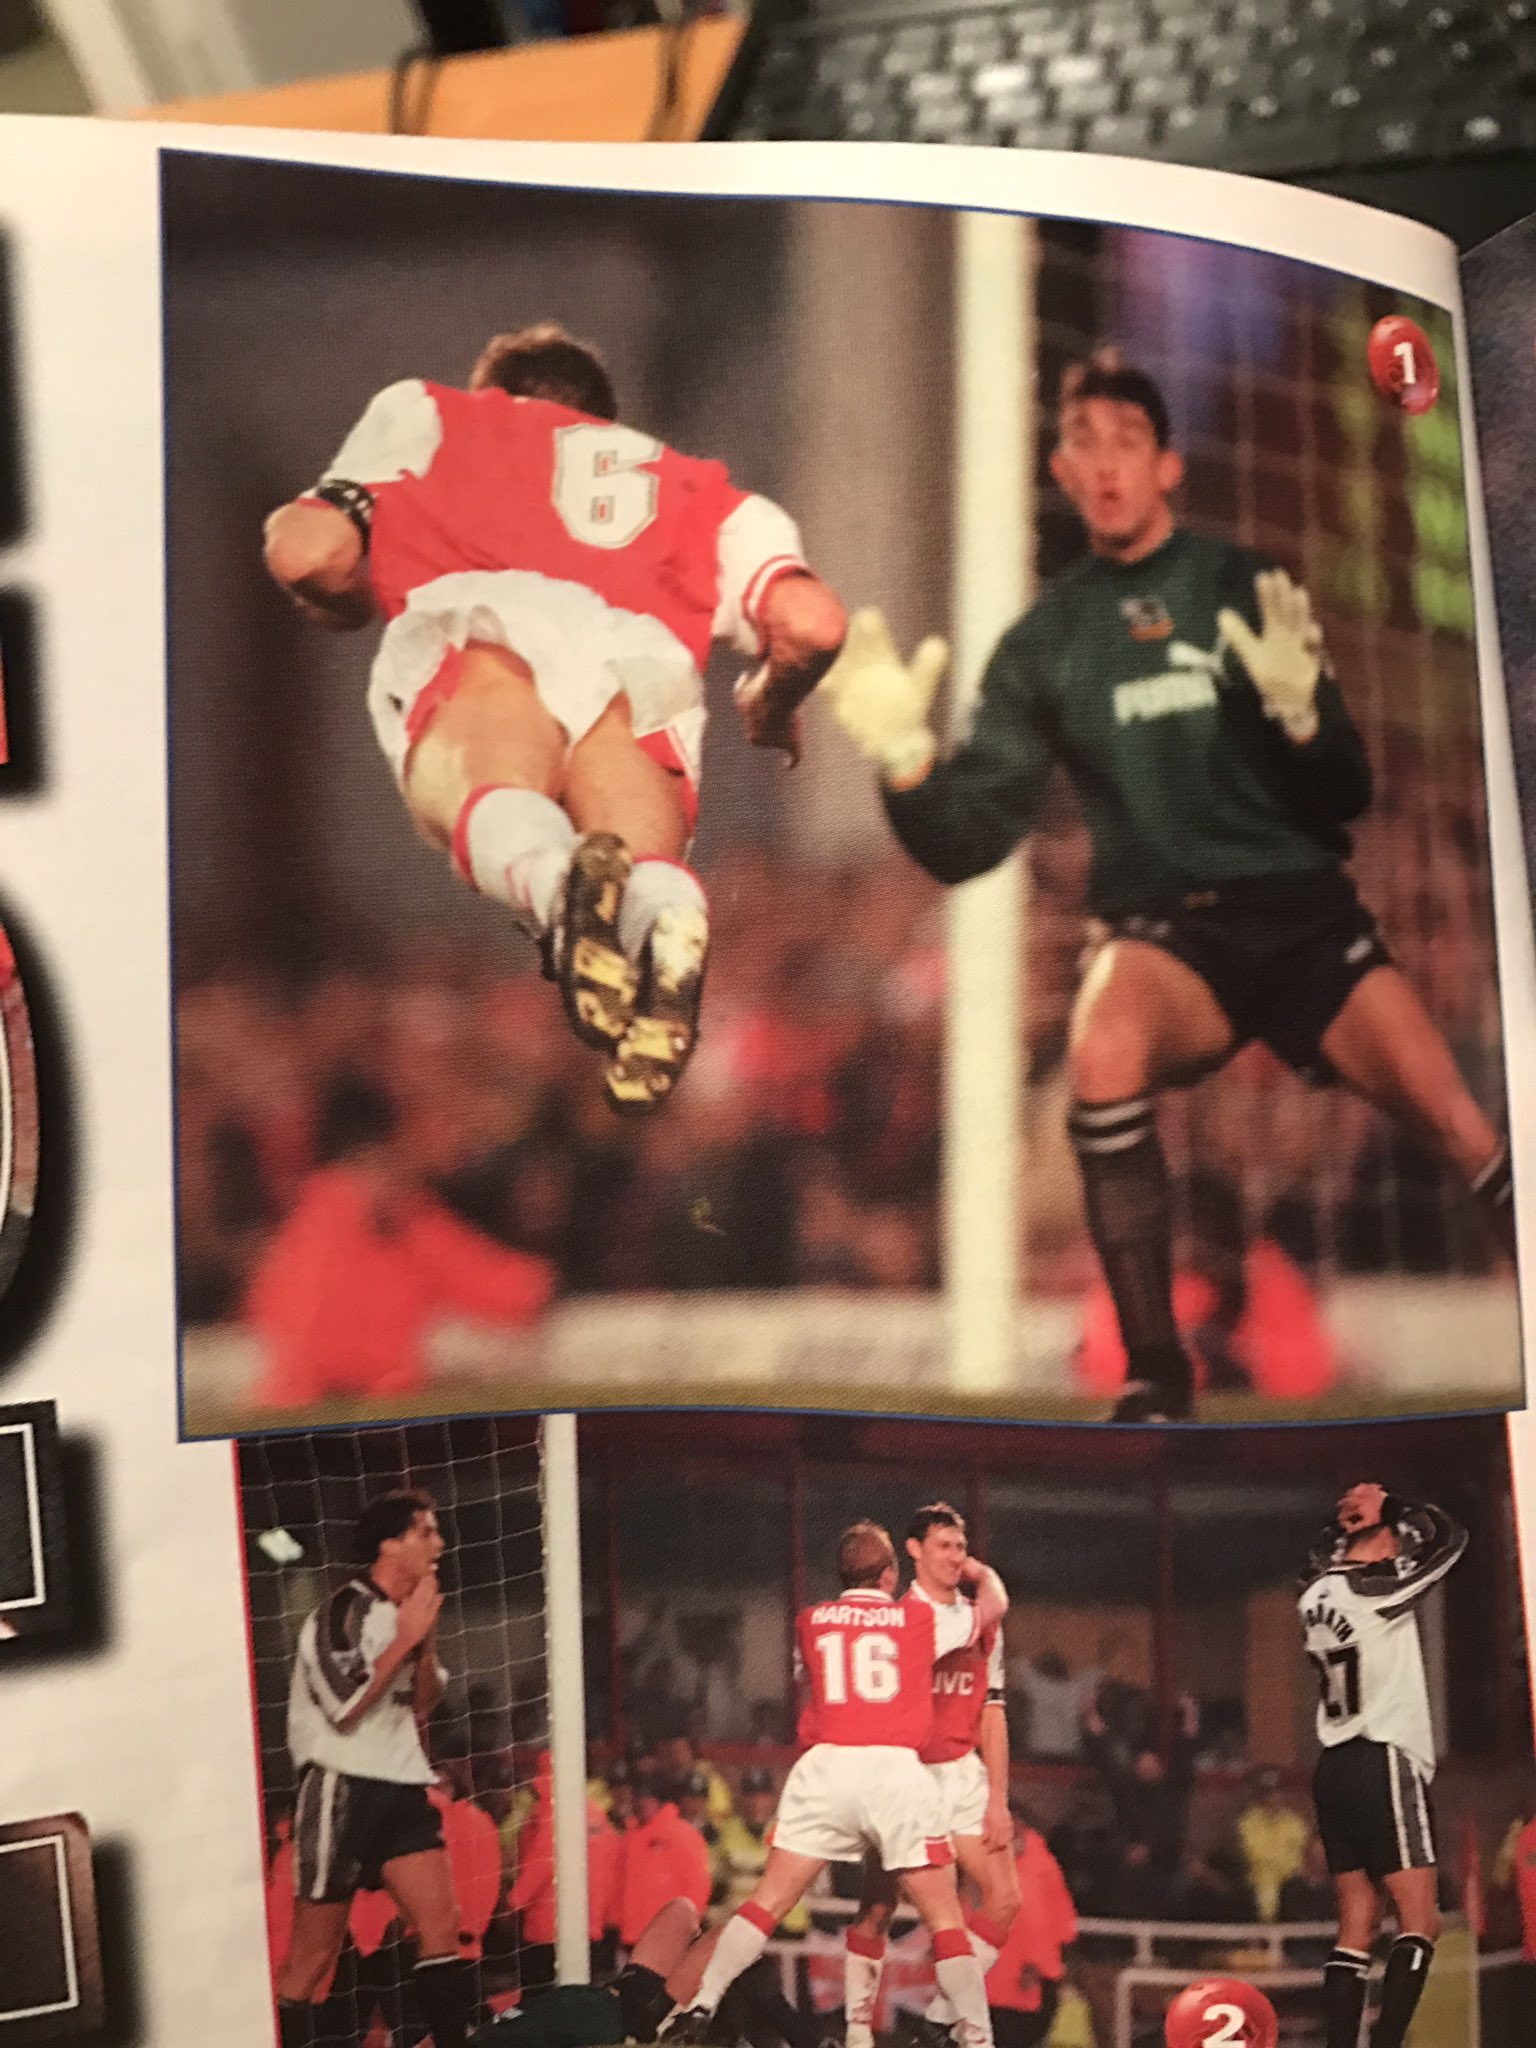 Just found this photo of Tony Adams doing the most Tony Adams header ever https://t.co/ZFKrjk7WFc